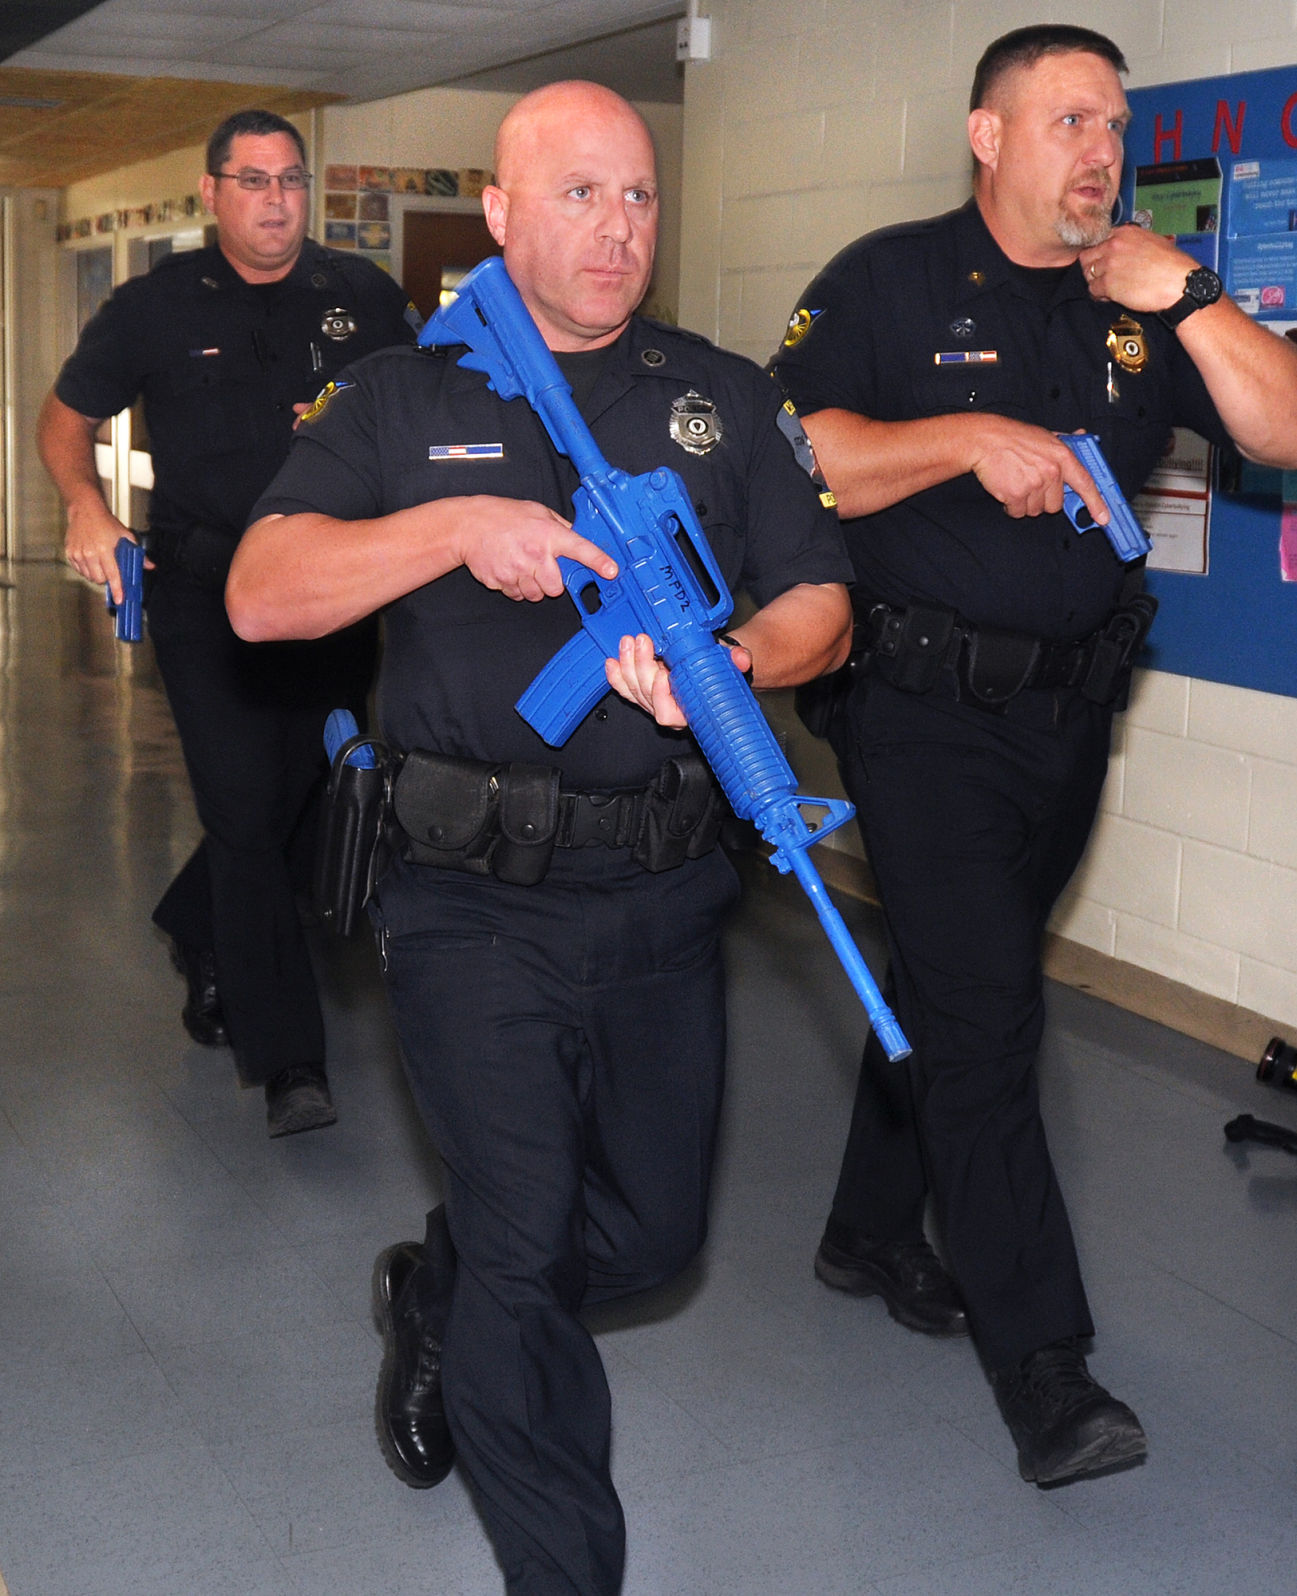 SLIDESHOW ACTIVE SHOOTER DEMONSTRATION Gallery